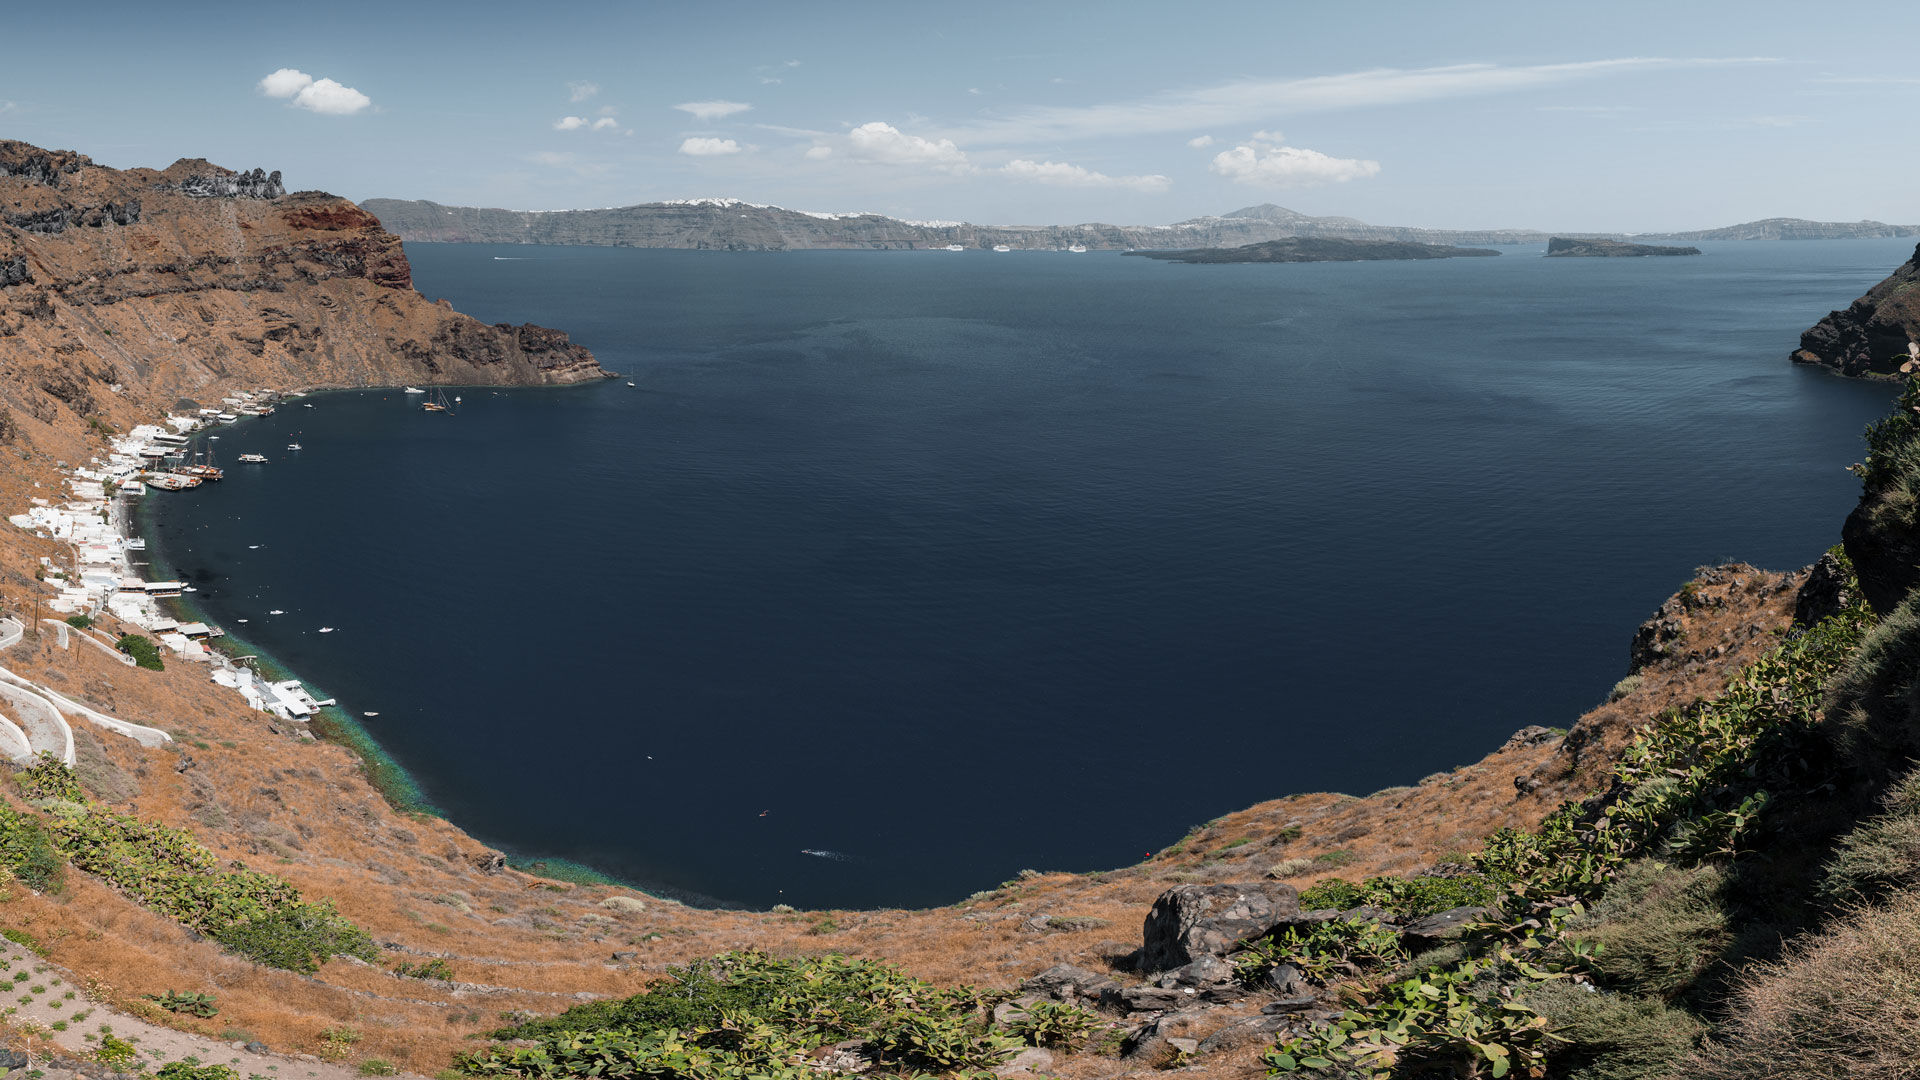 Panoramic view on Aegean sea from Manolas village on Thirassia island